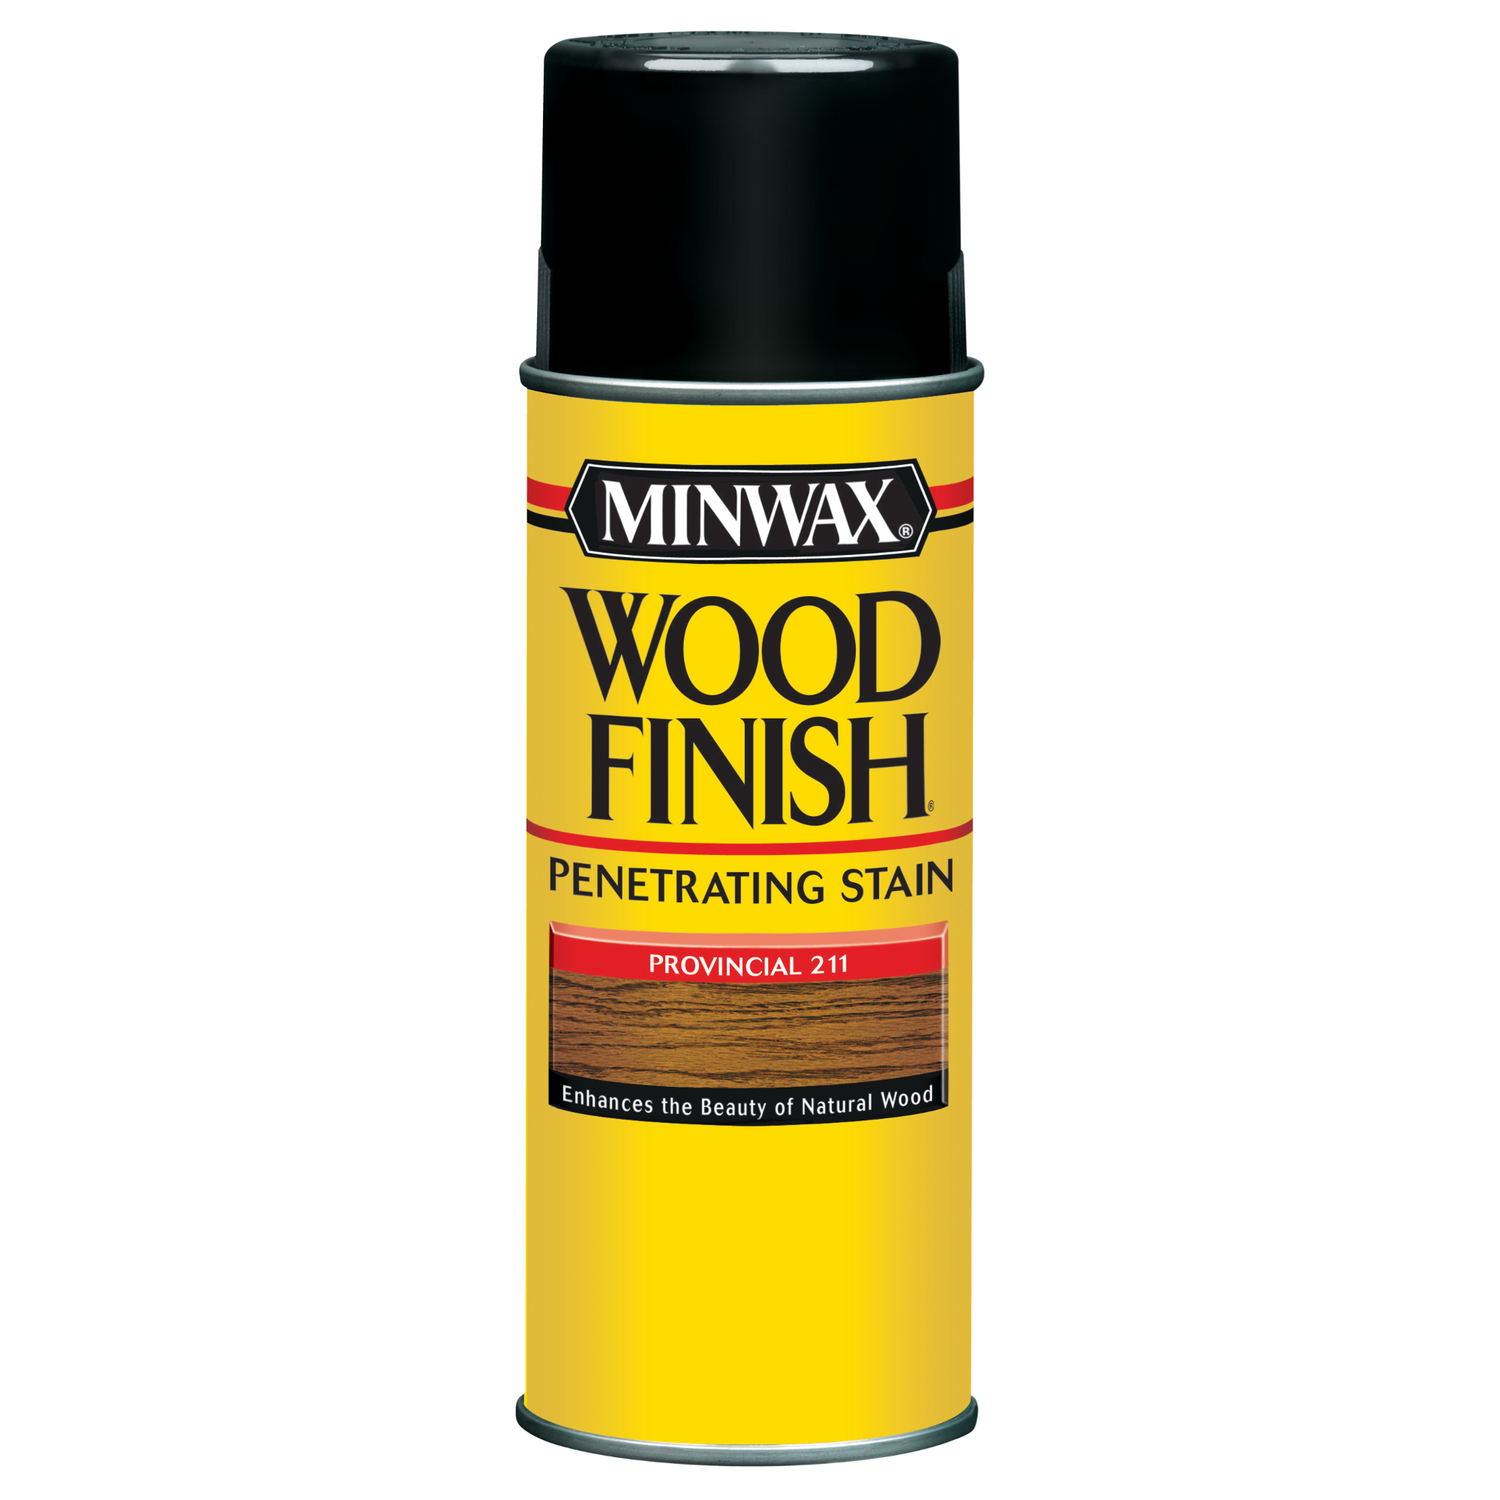 Minwax  Wood Finish  Semi-Transparent  Provincial  Oil-Based  Wood Stain  11.5 oz.